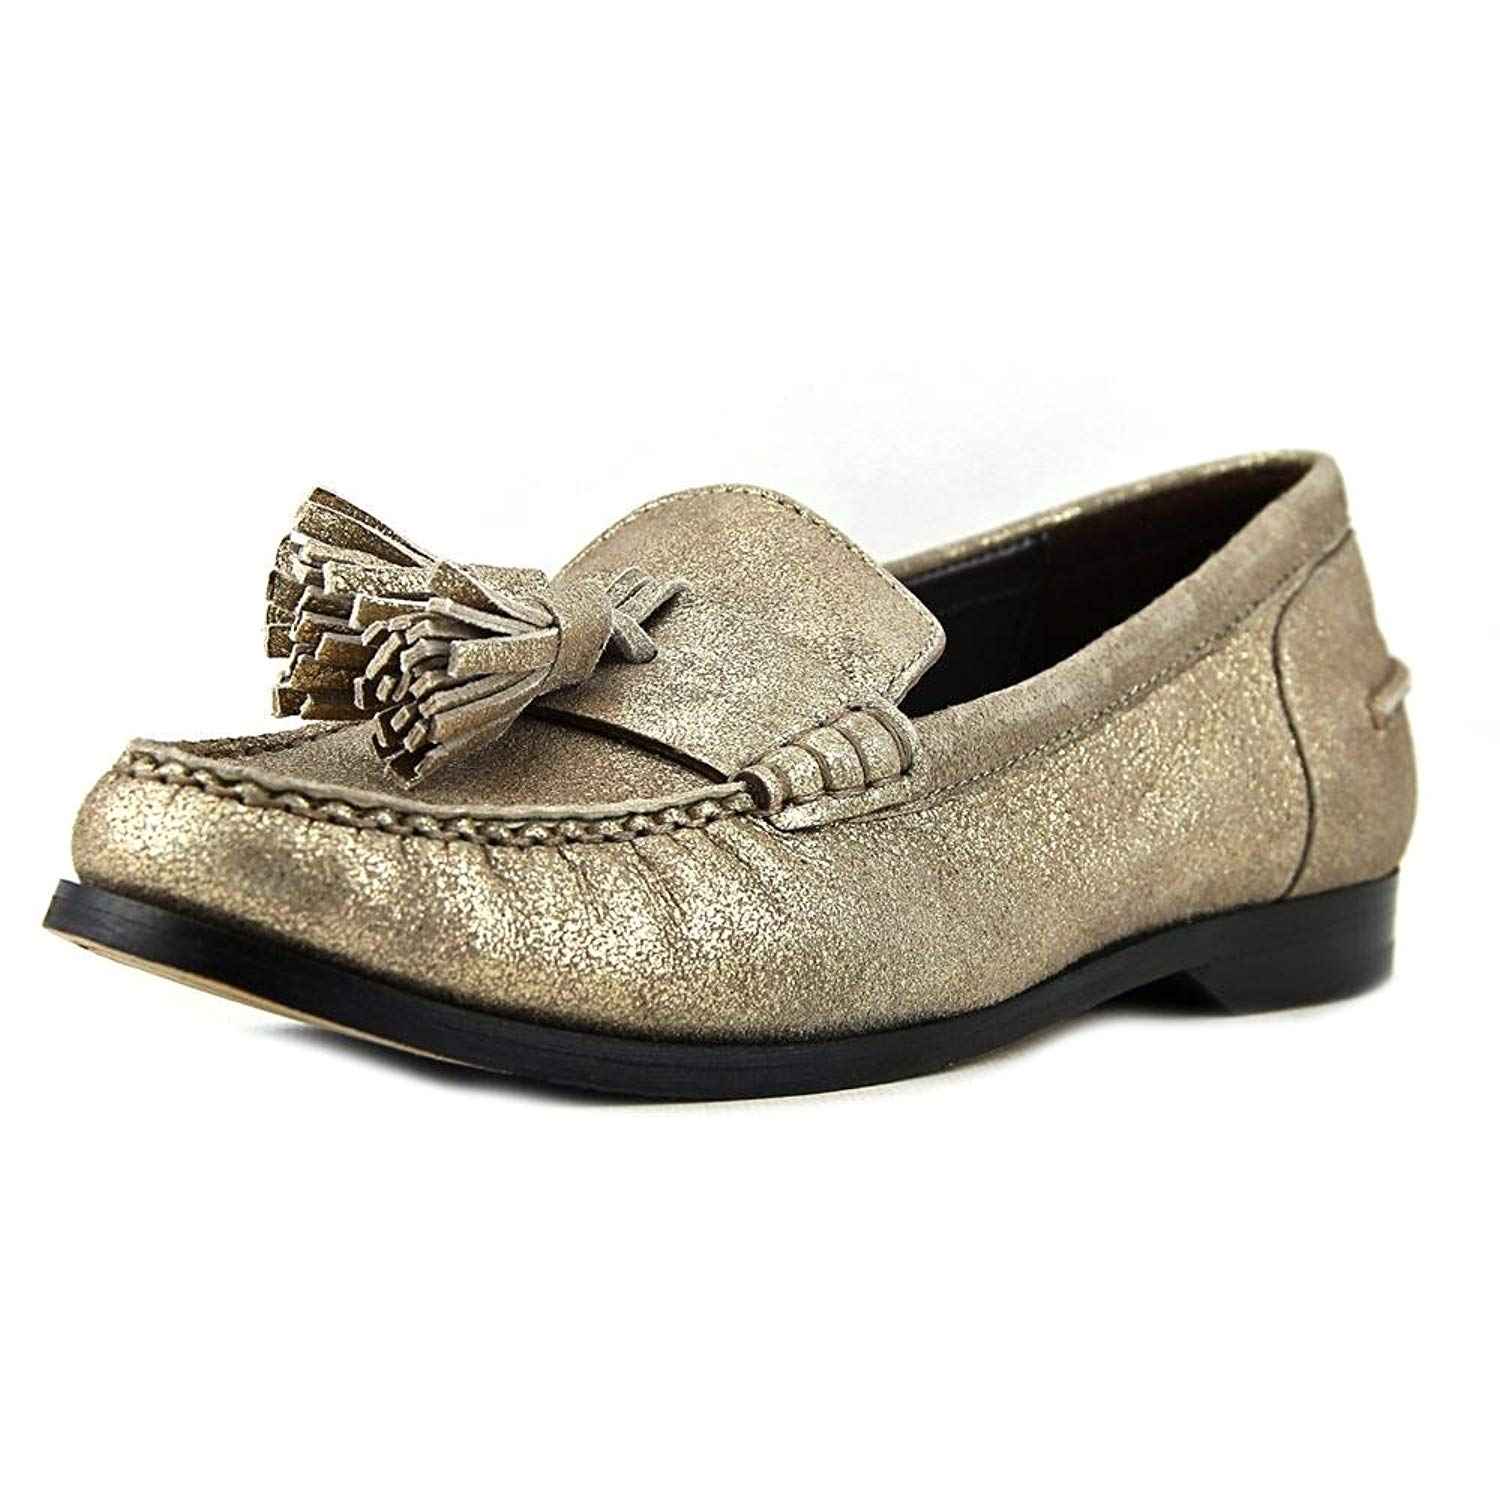 a874e55120d Get Quotations · Cole Haan Women s Pinch Grand Tassel Penny Loafer